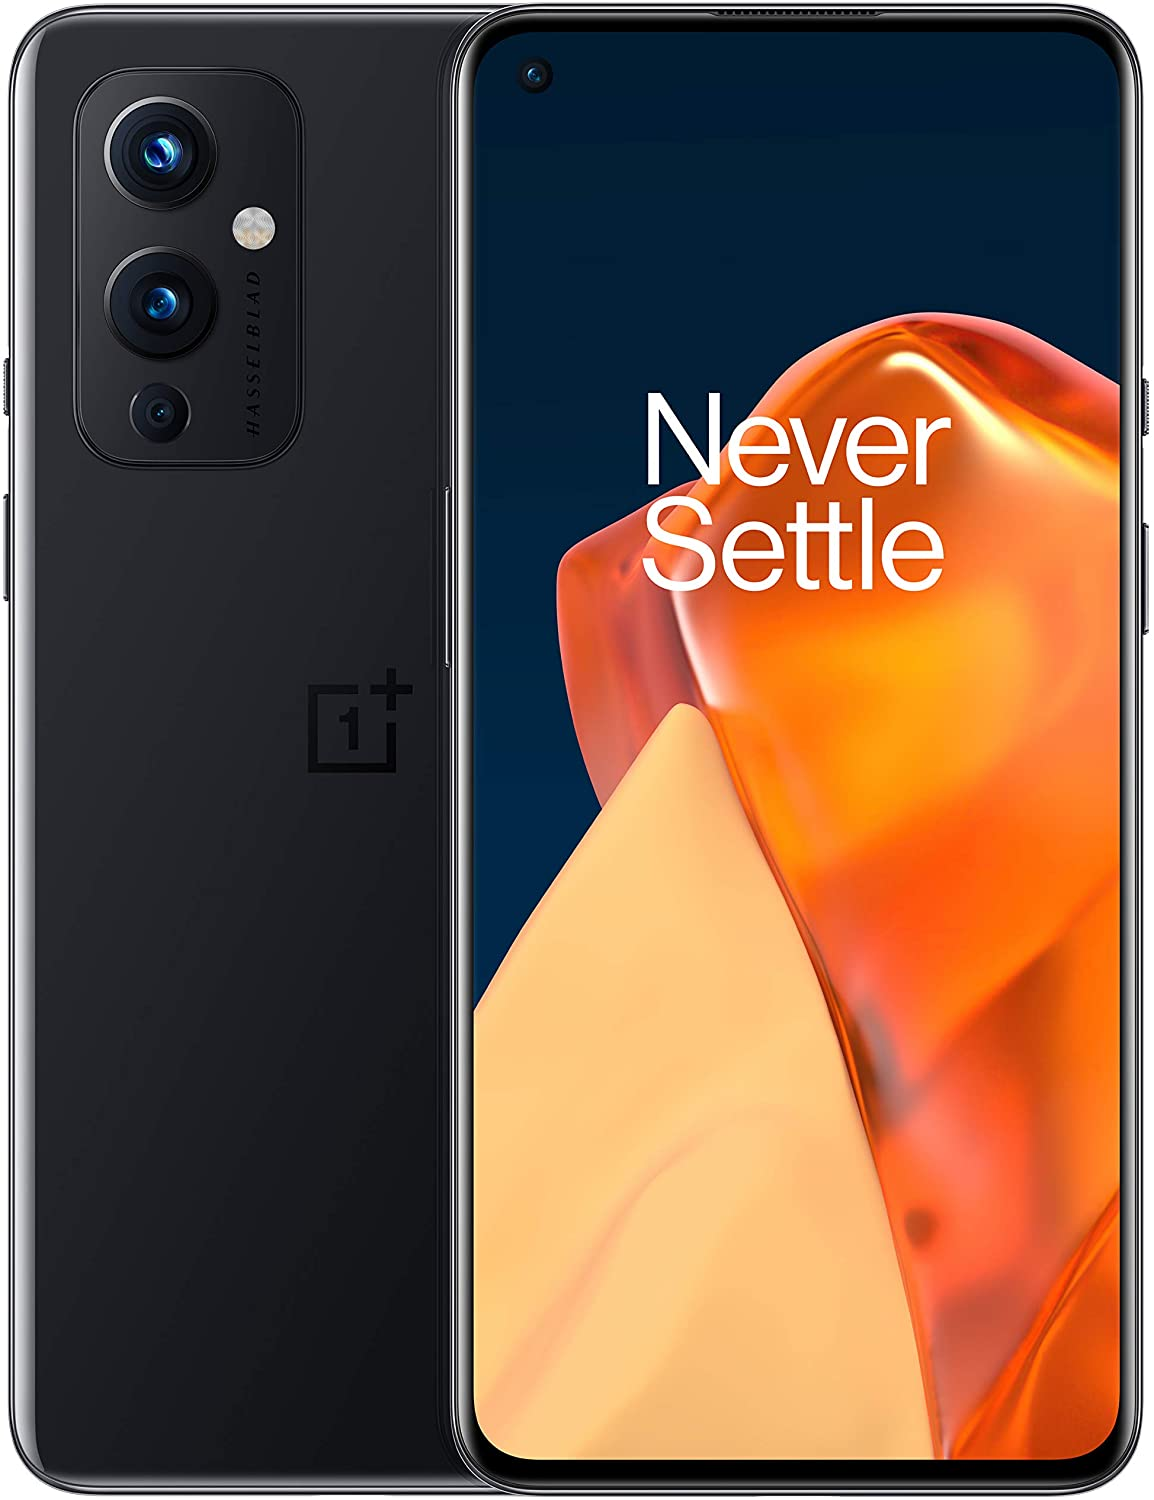 OnePlus 9 Astral Black, 5G Unlocked Android Smartphone